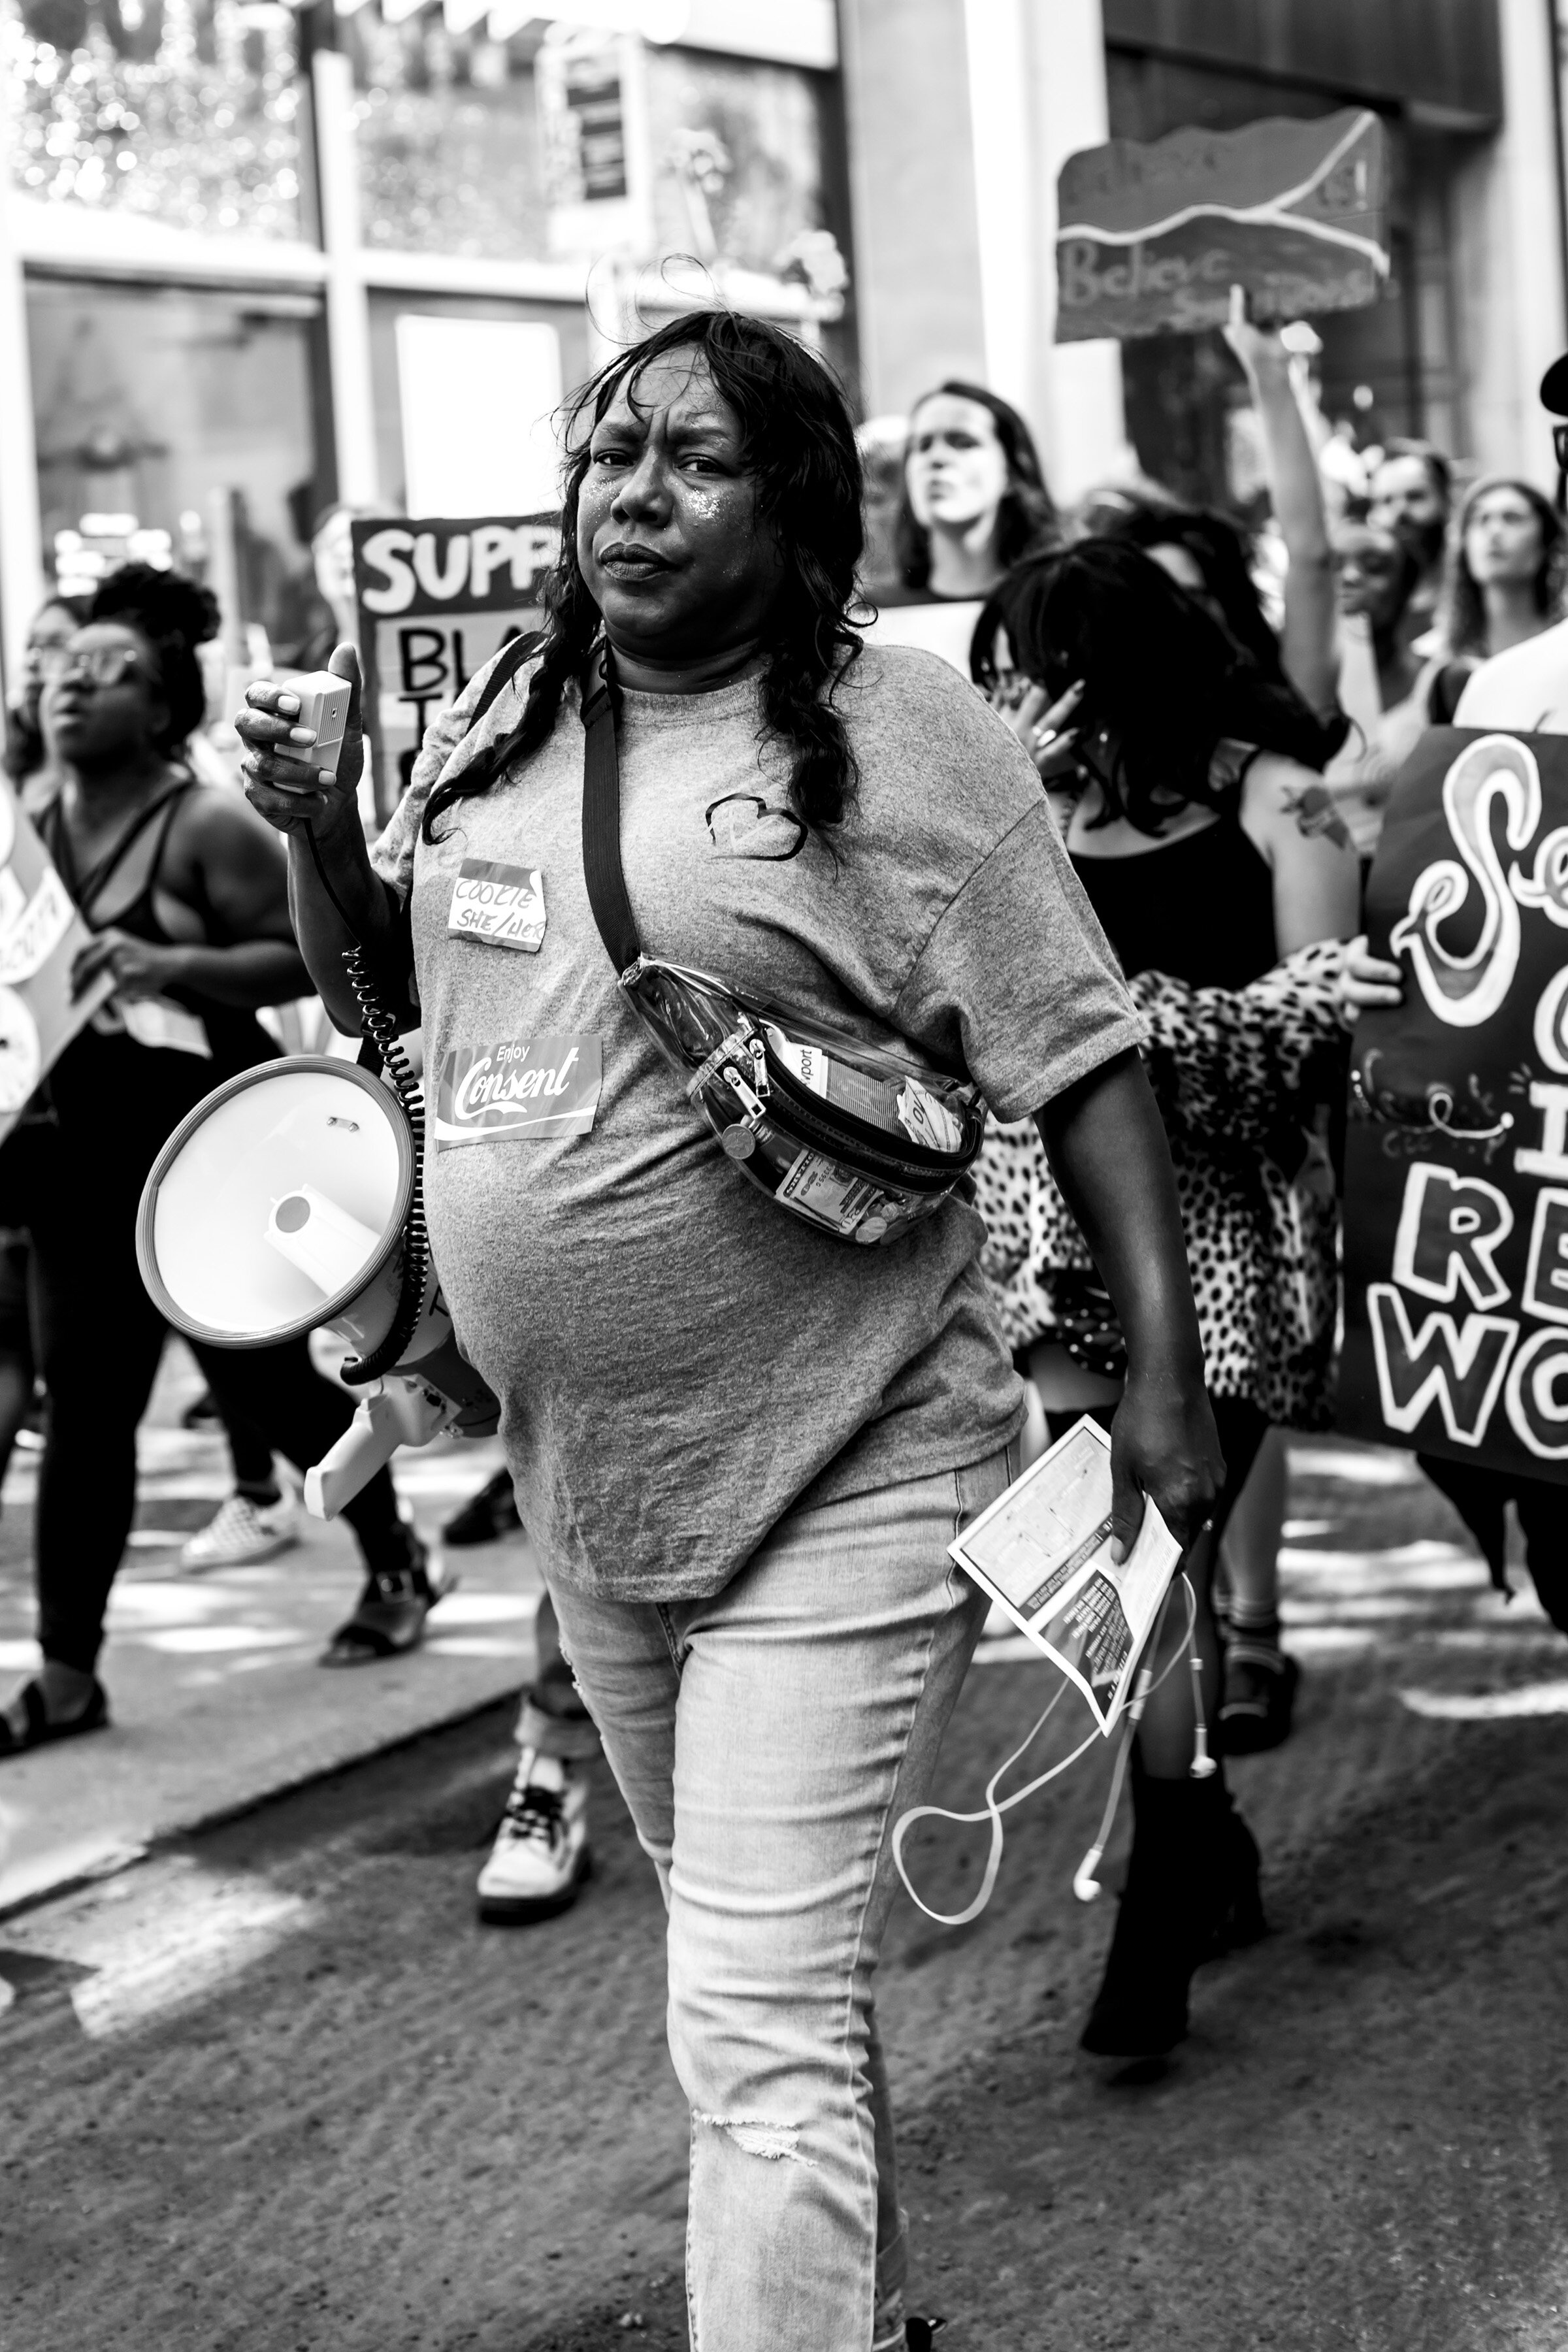 MarchToEndRapeCulture_2019_MikeArrison_BW_092919_0092.jpg